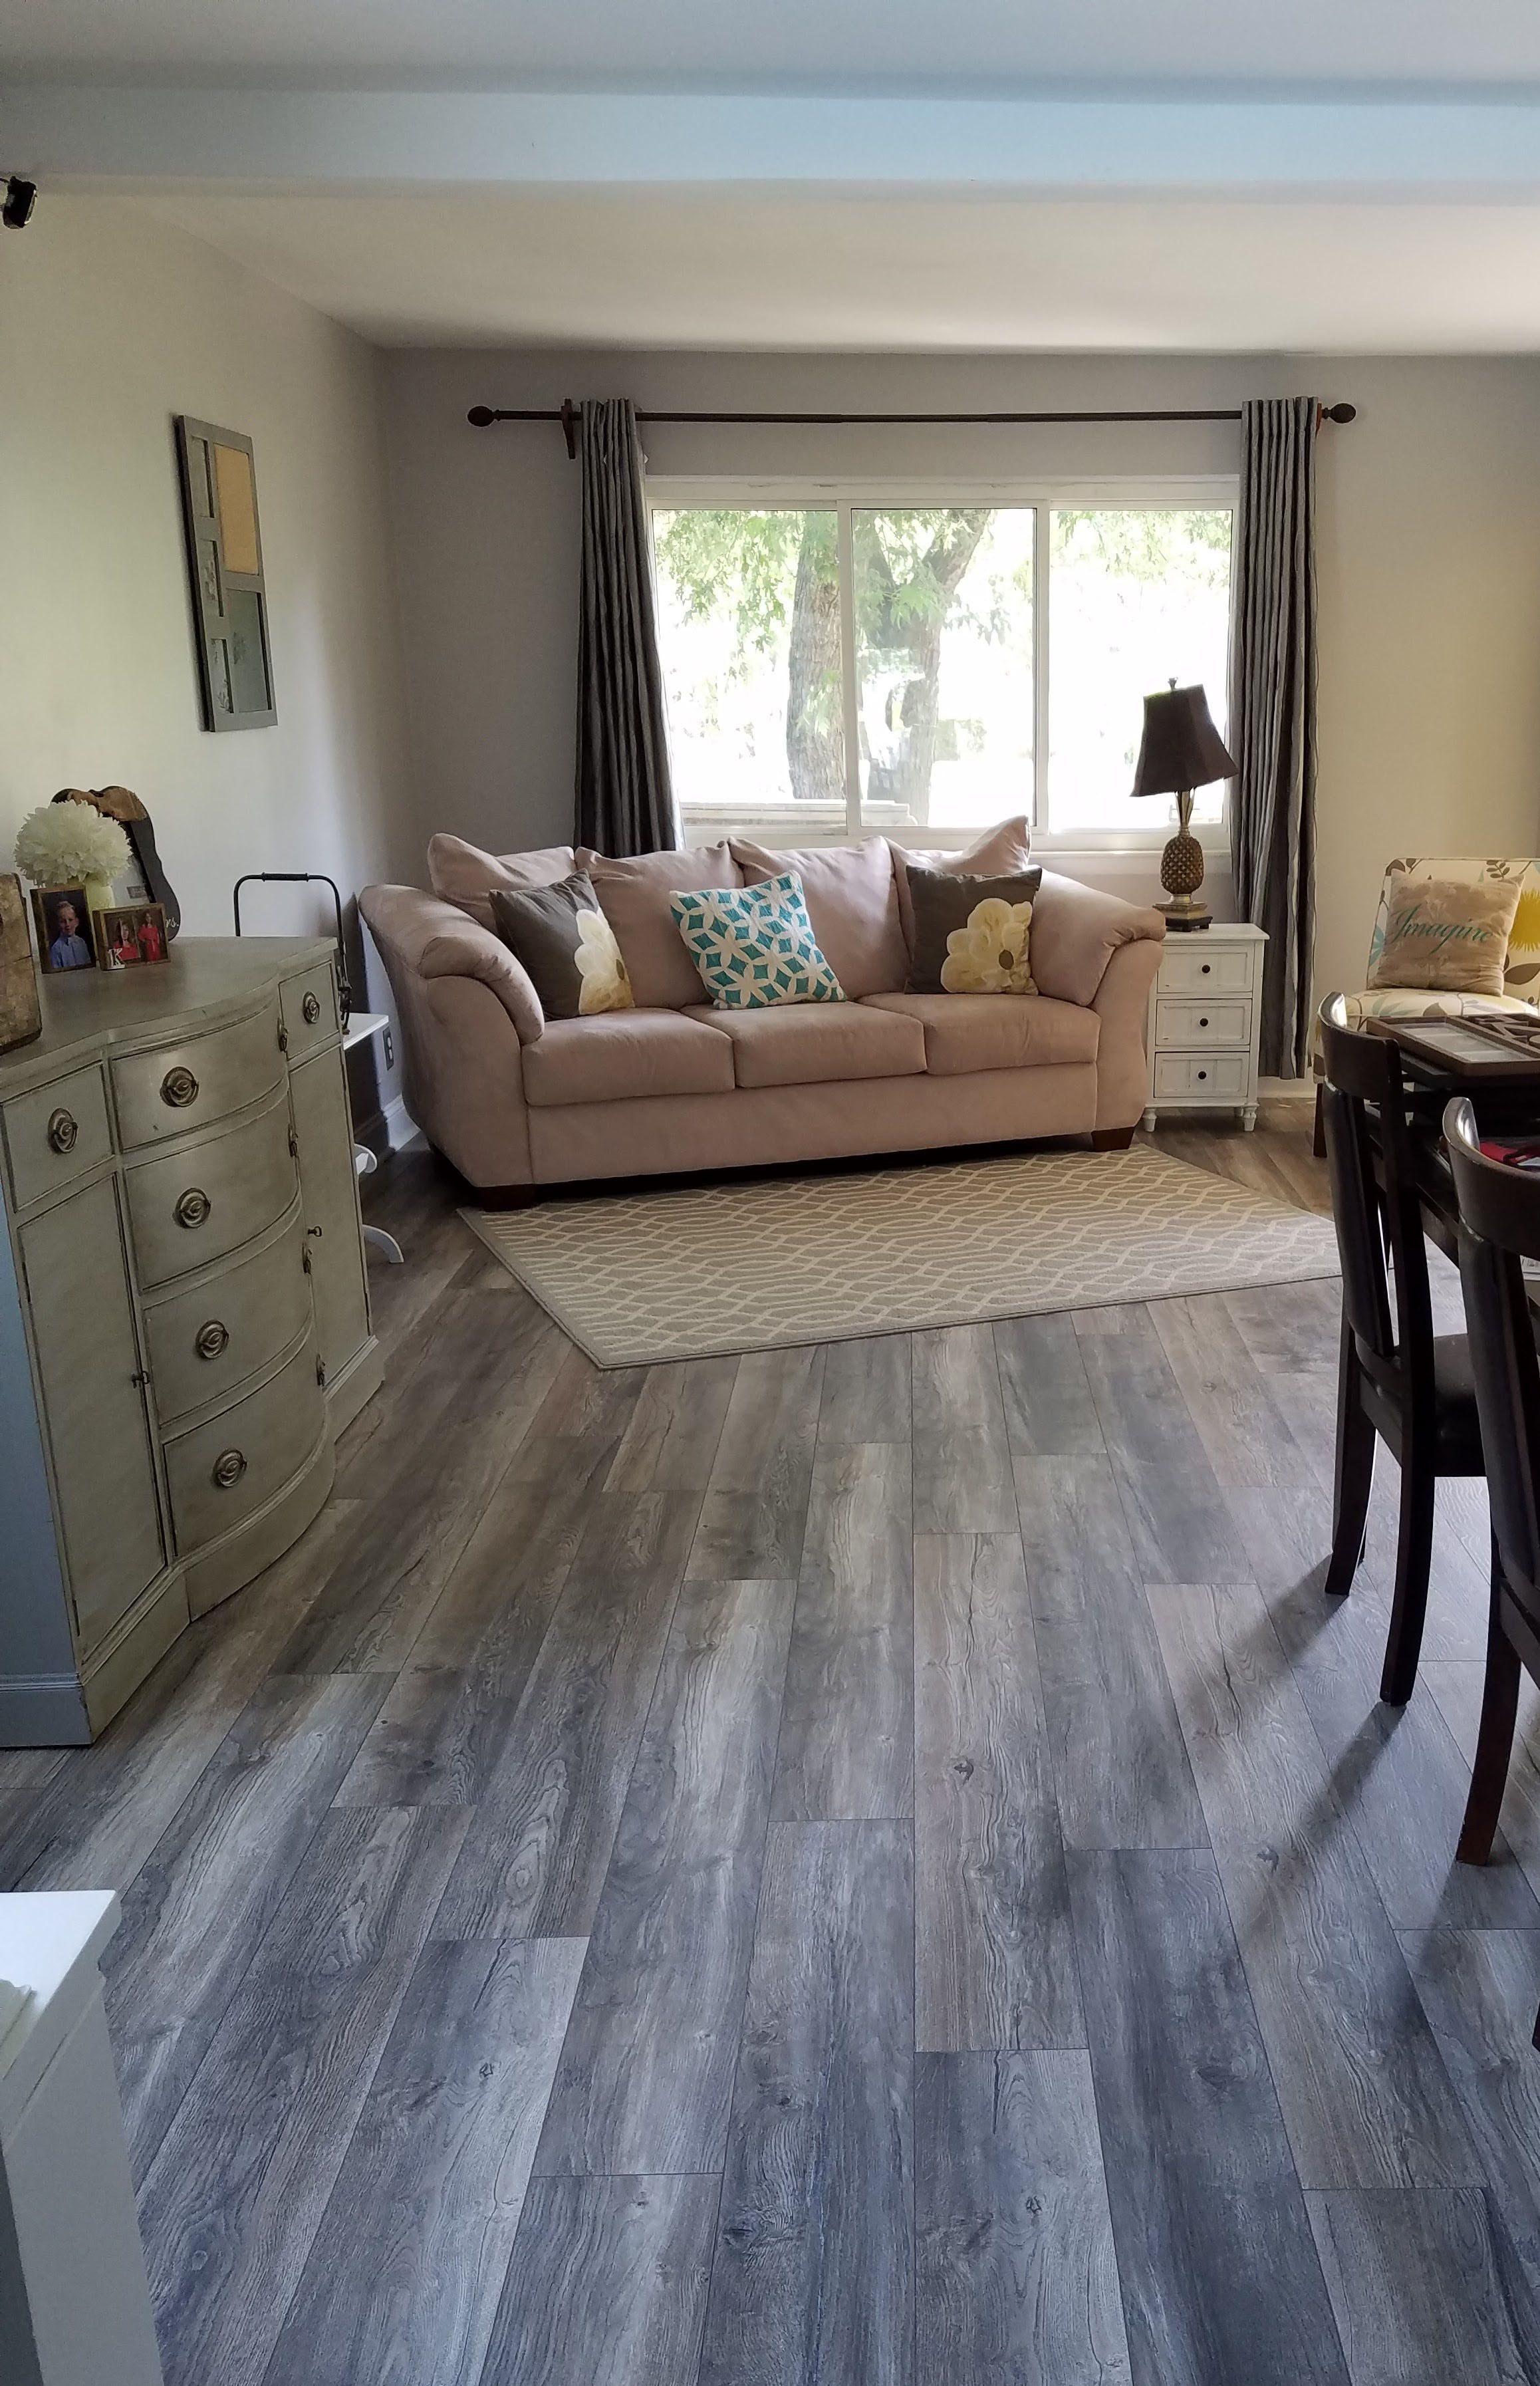 Vintage pewter oak pergo outlast laminate flooring pergo 174 flooring - Order Toklo By Swiss Krono Laminate My Floor Villa 12 Mm Collection Harbour Oak Grey Delivered Right To Your Door